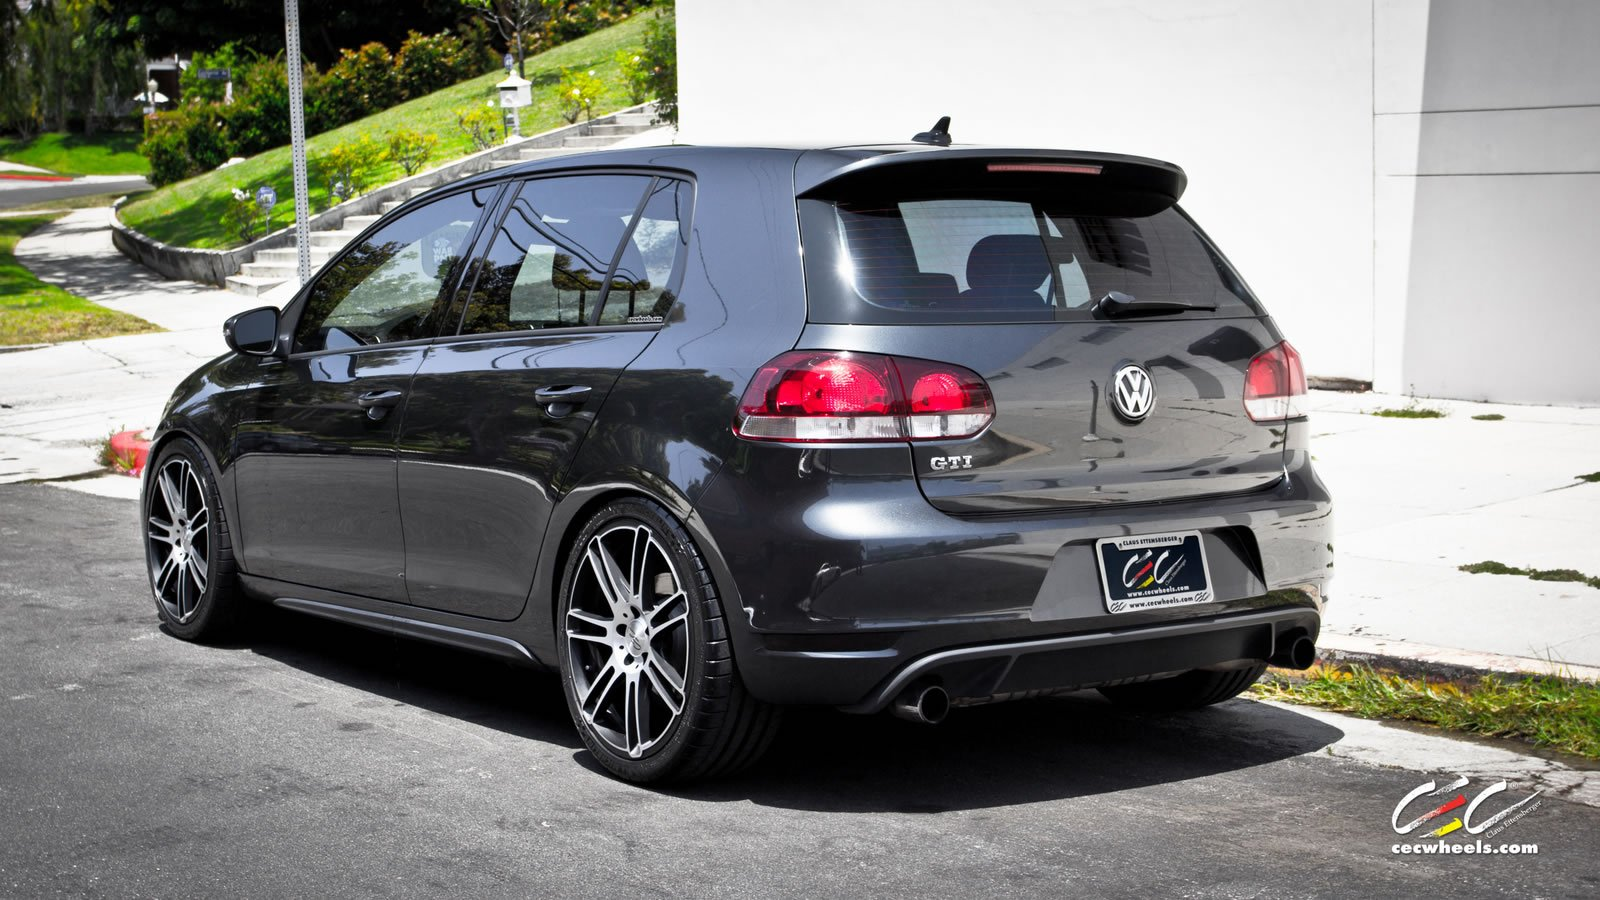 2015 Cars Cec Tuning Wheels Vw Golf Gti Wallpaper